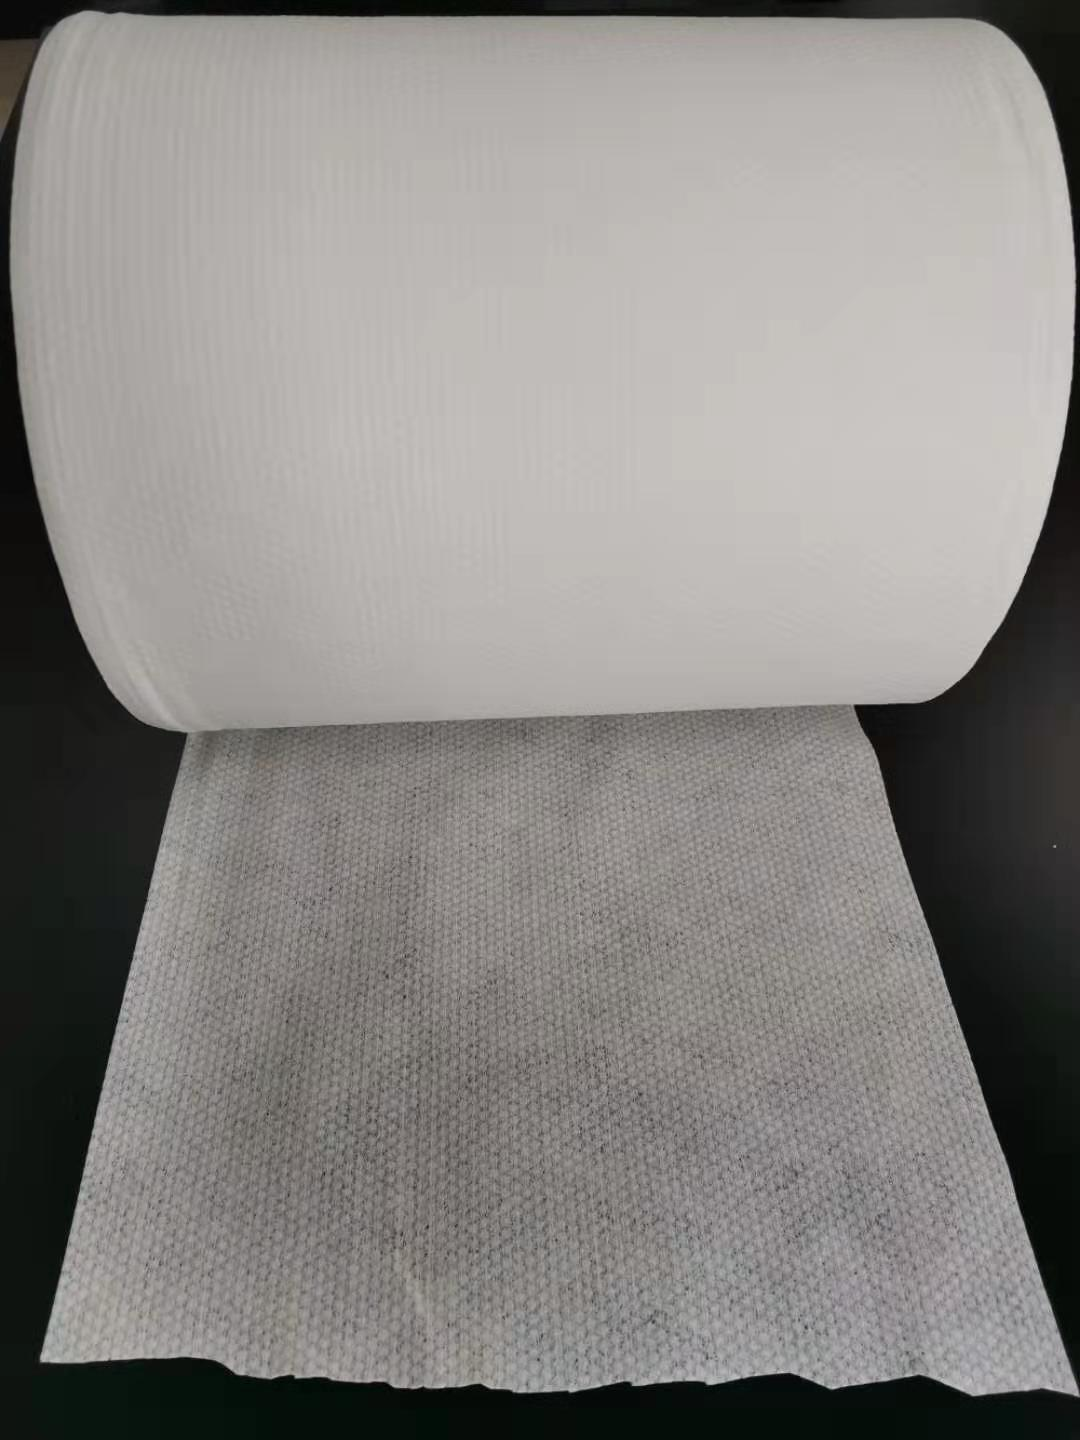 Nonwoven Fabric for Wet Wipes